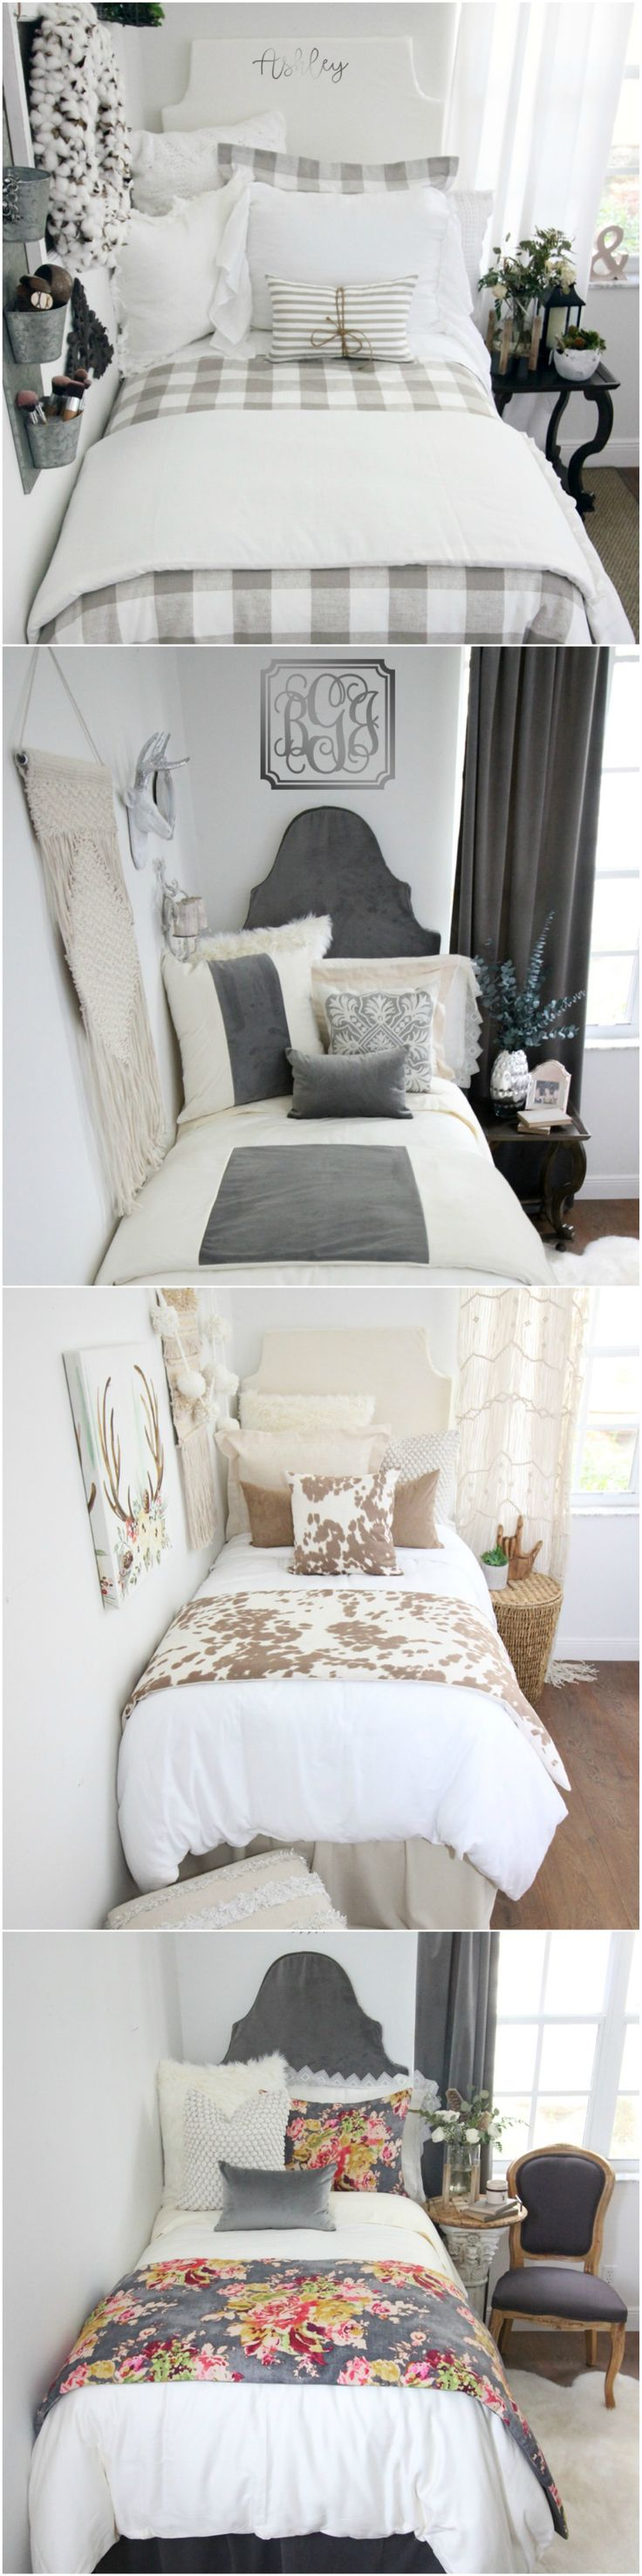 Best 25+ Girl dorms ideas on Pinterest | Dorm room, Bohemian dorm ...